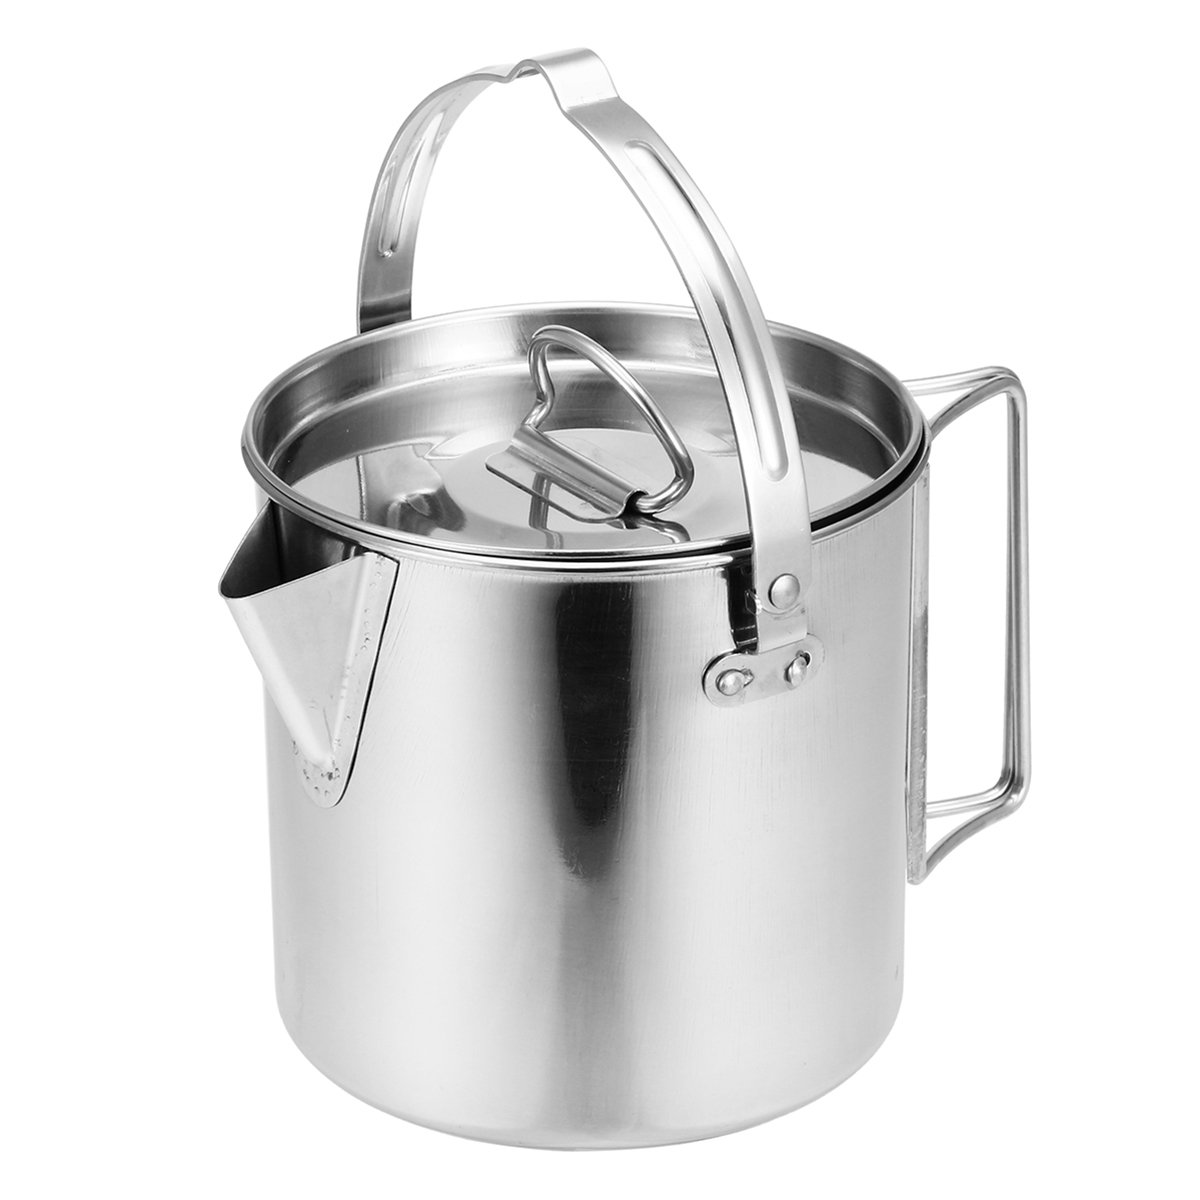 1.2L 410 Stainless Steel Hanging Pot Outdoor Tea Kettle Camping Picnic Cookware